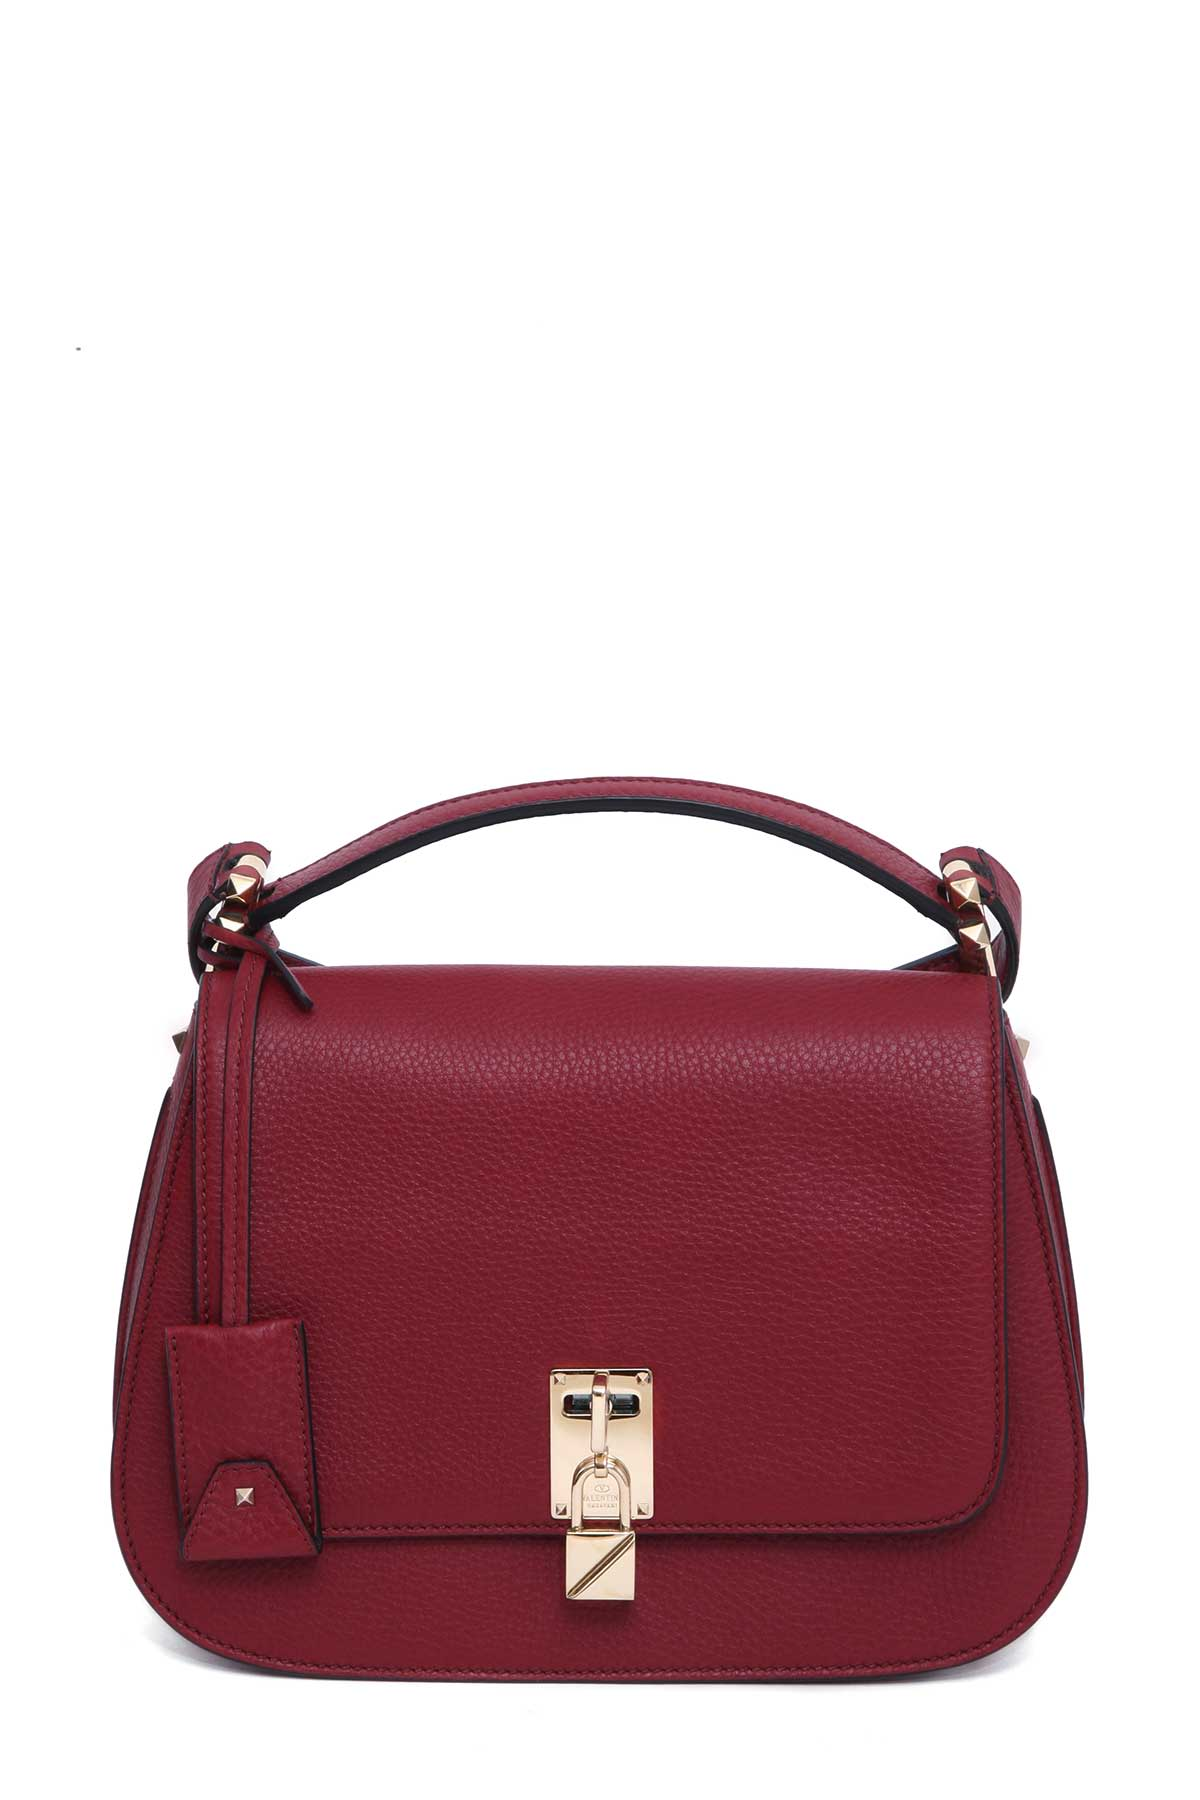 Valentino Garavani joylock Shoulder Bag